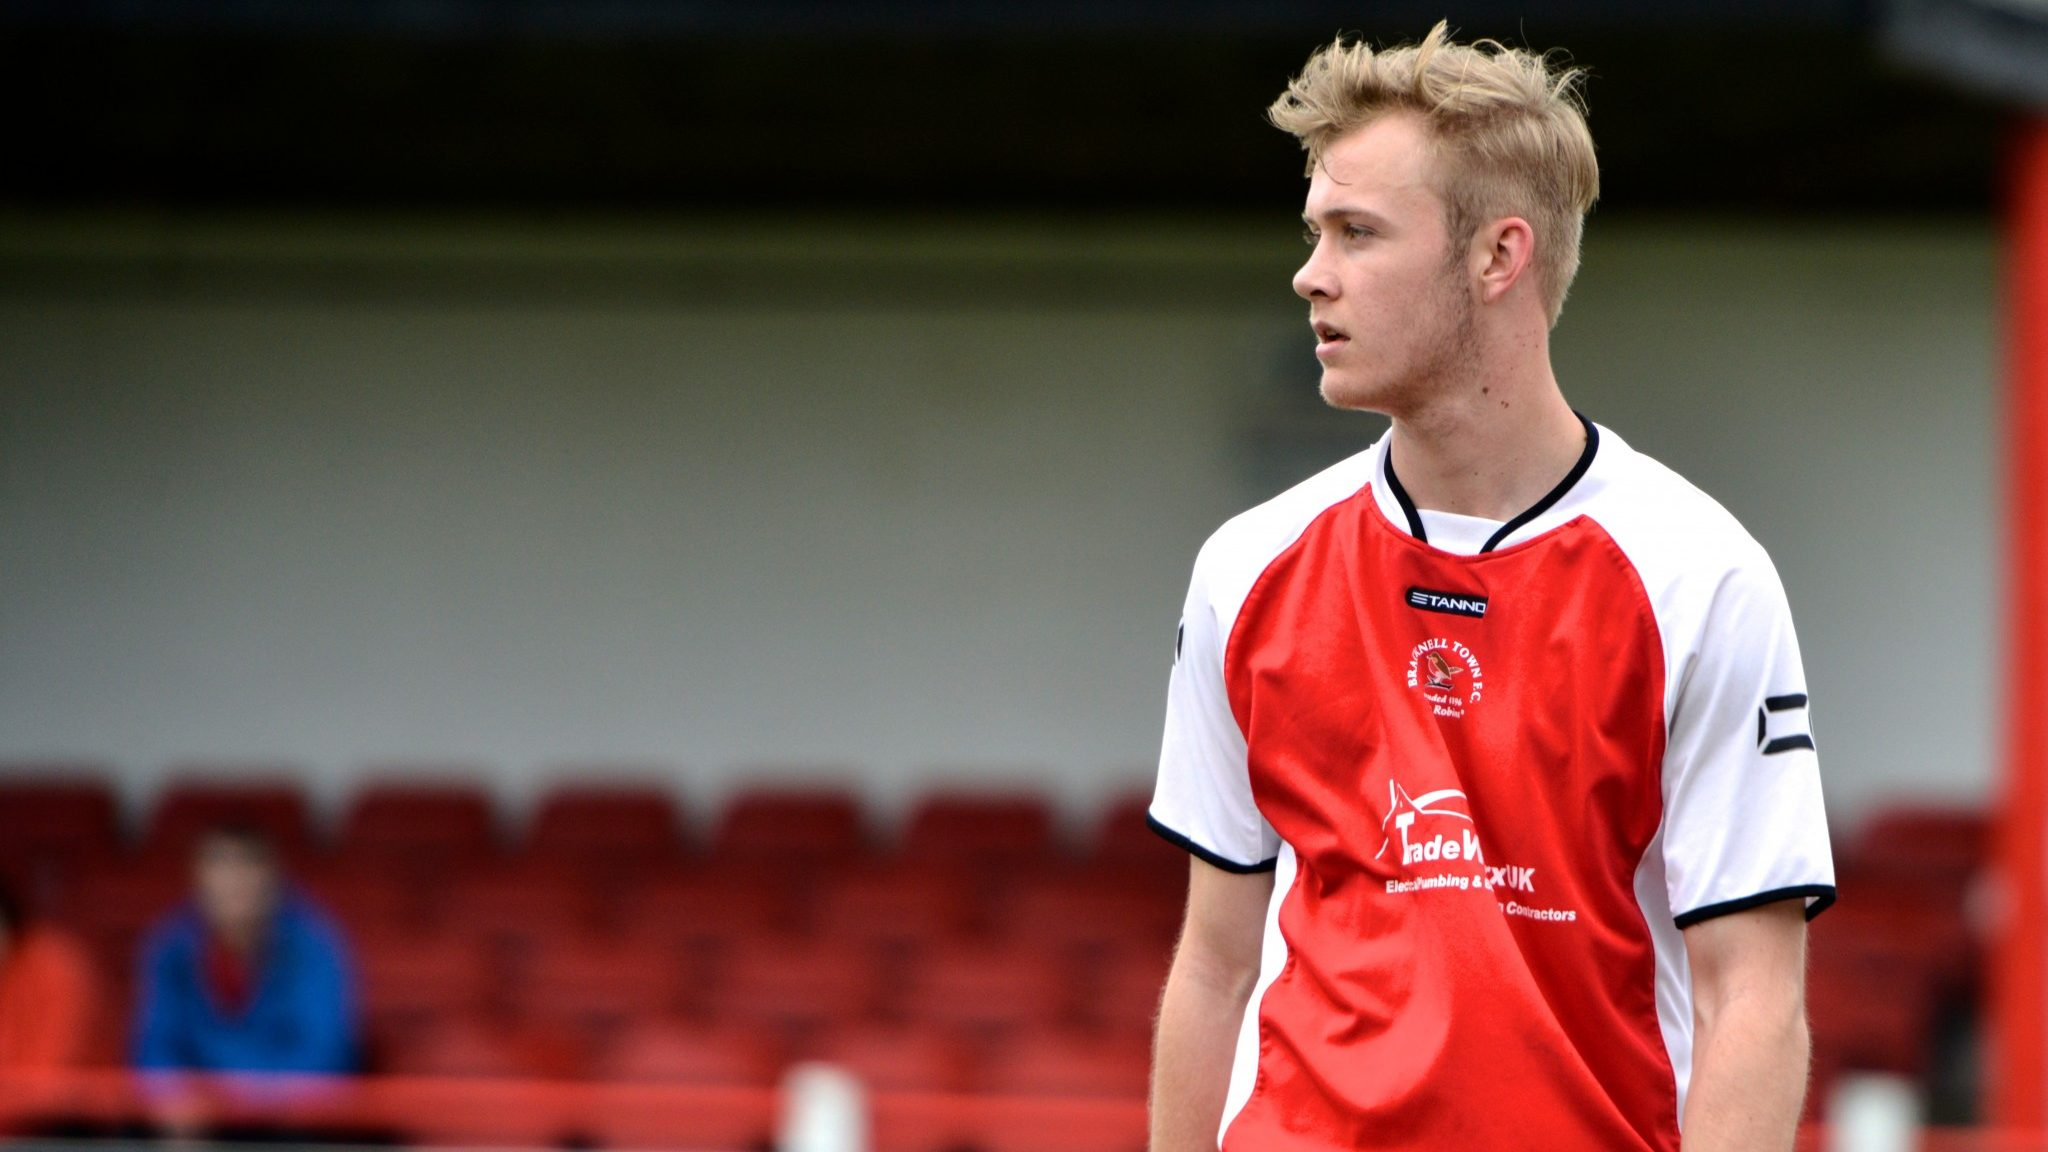 Ex-Bracknell Town star Sam Barratt is on trial at a Premier League club